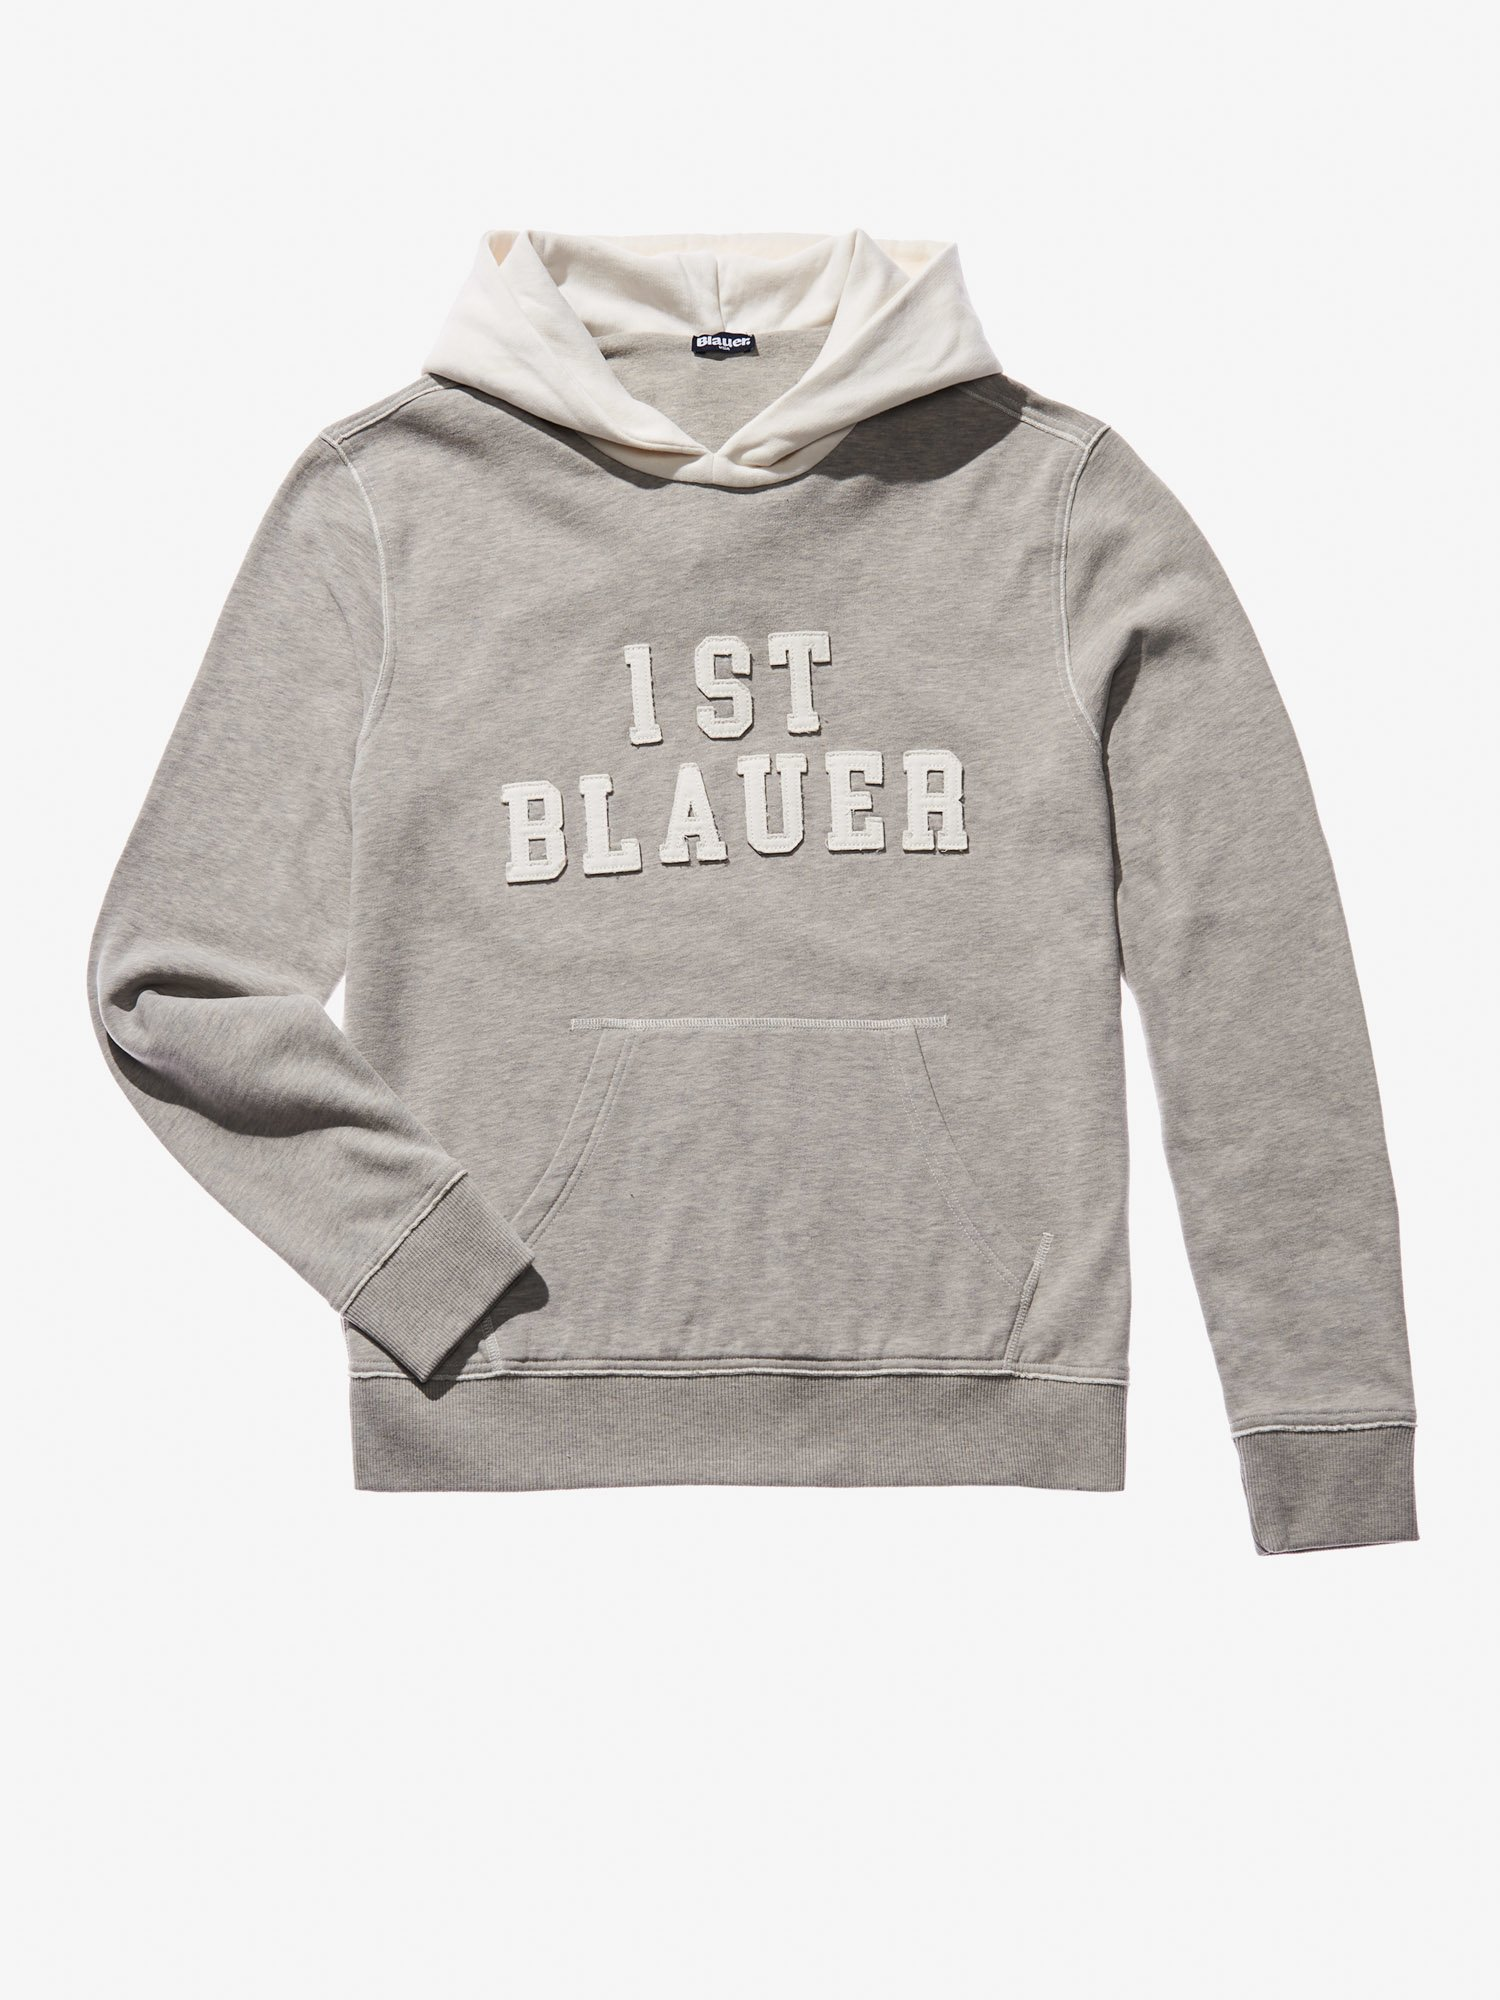 CREW NECK SWEATSHIRT WITH POUCH POCKET - Blauer